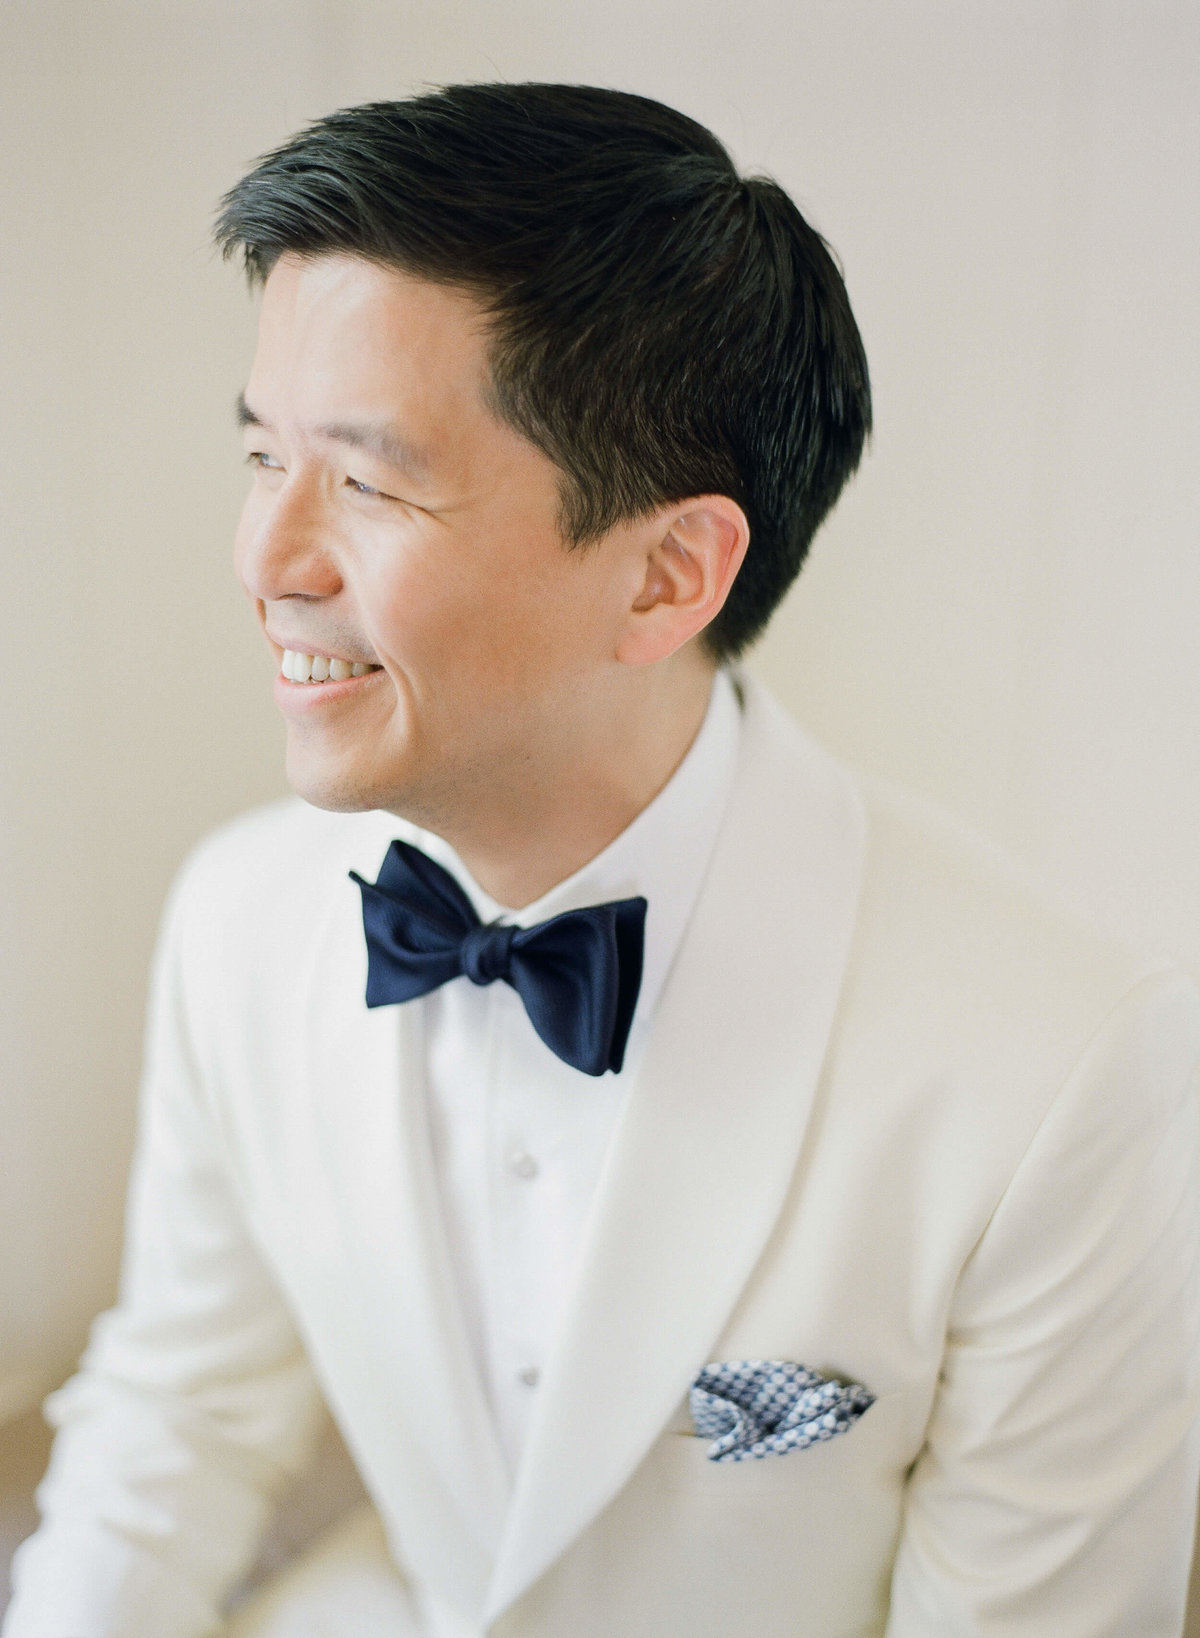 21-KTMerry-wedding-photography-groom-portrait-NapaValley